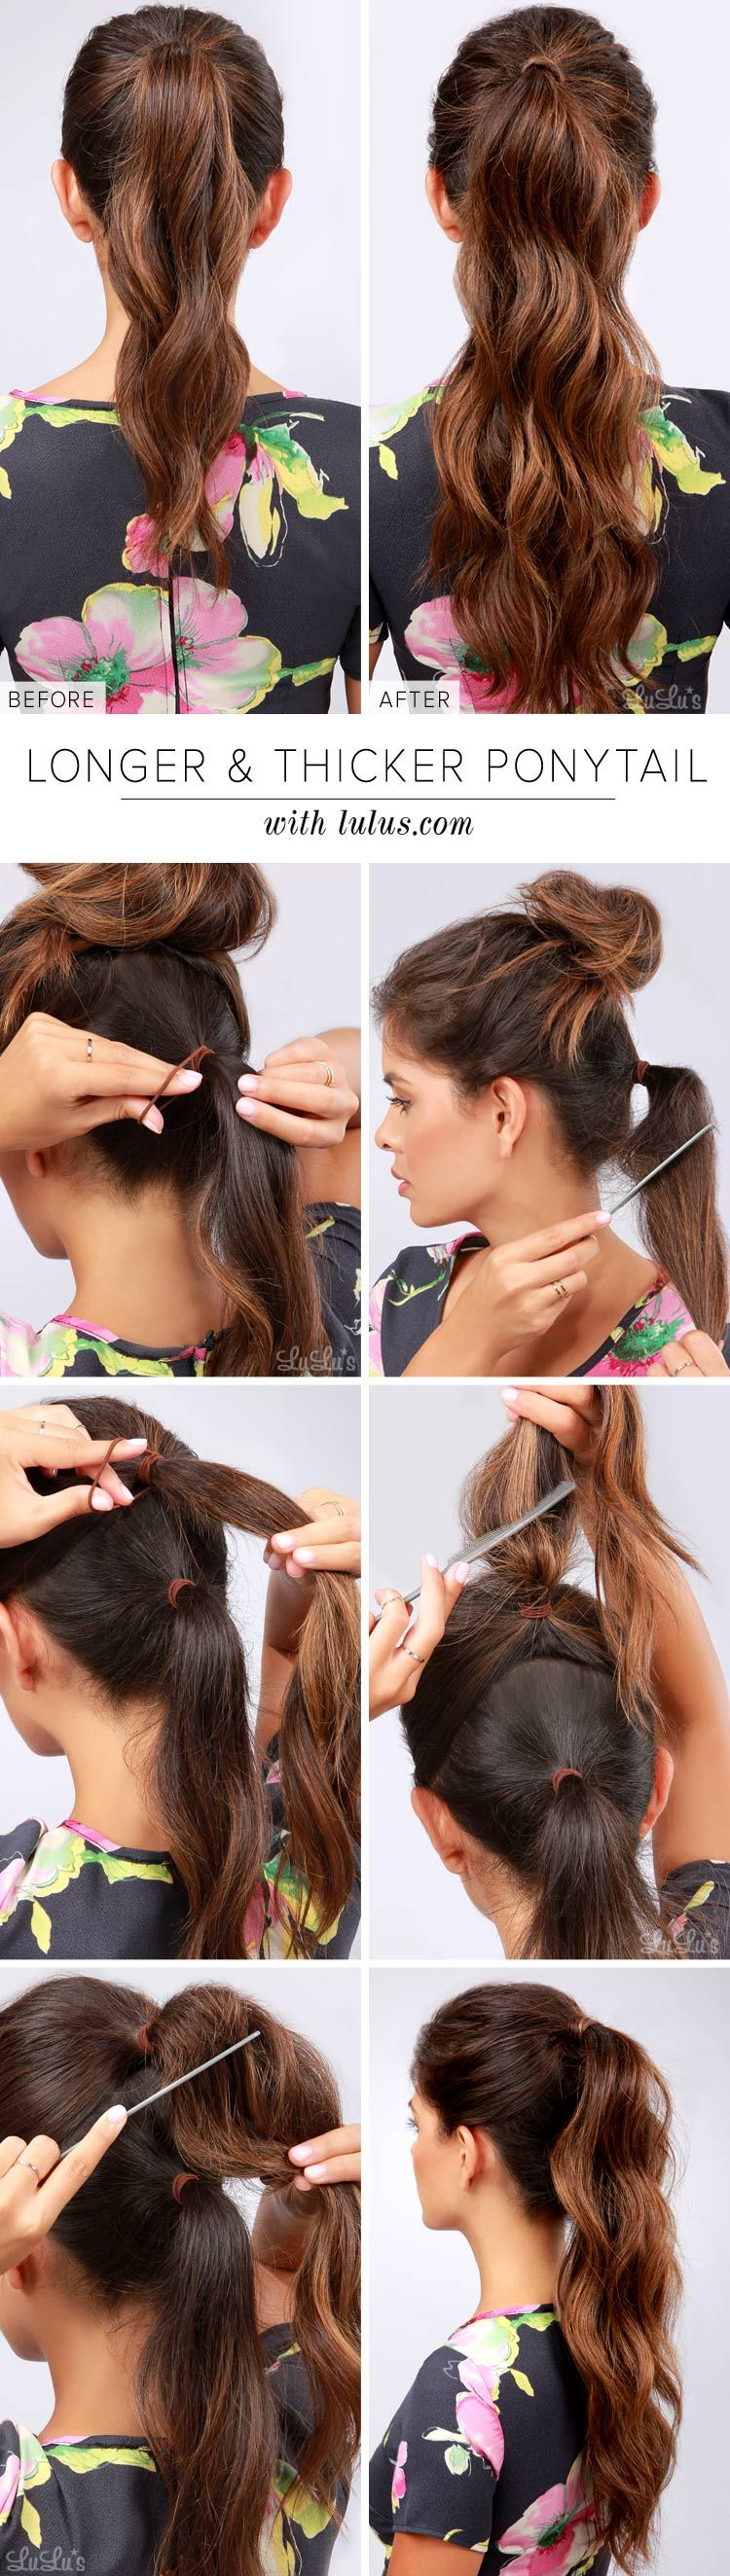 Lulus How To Longer & Thicker Ponytail